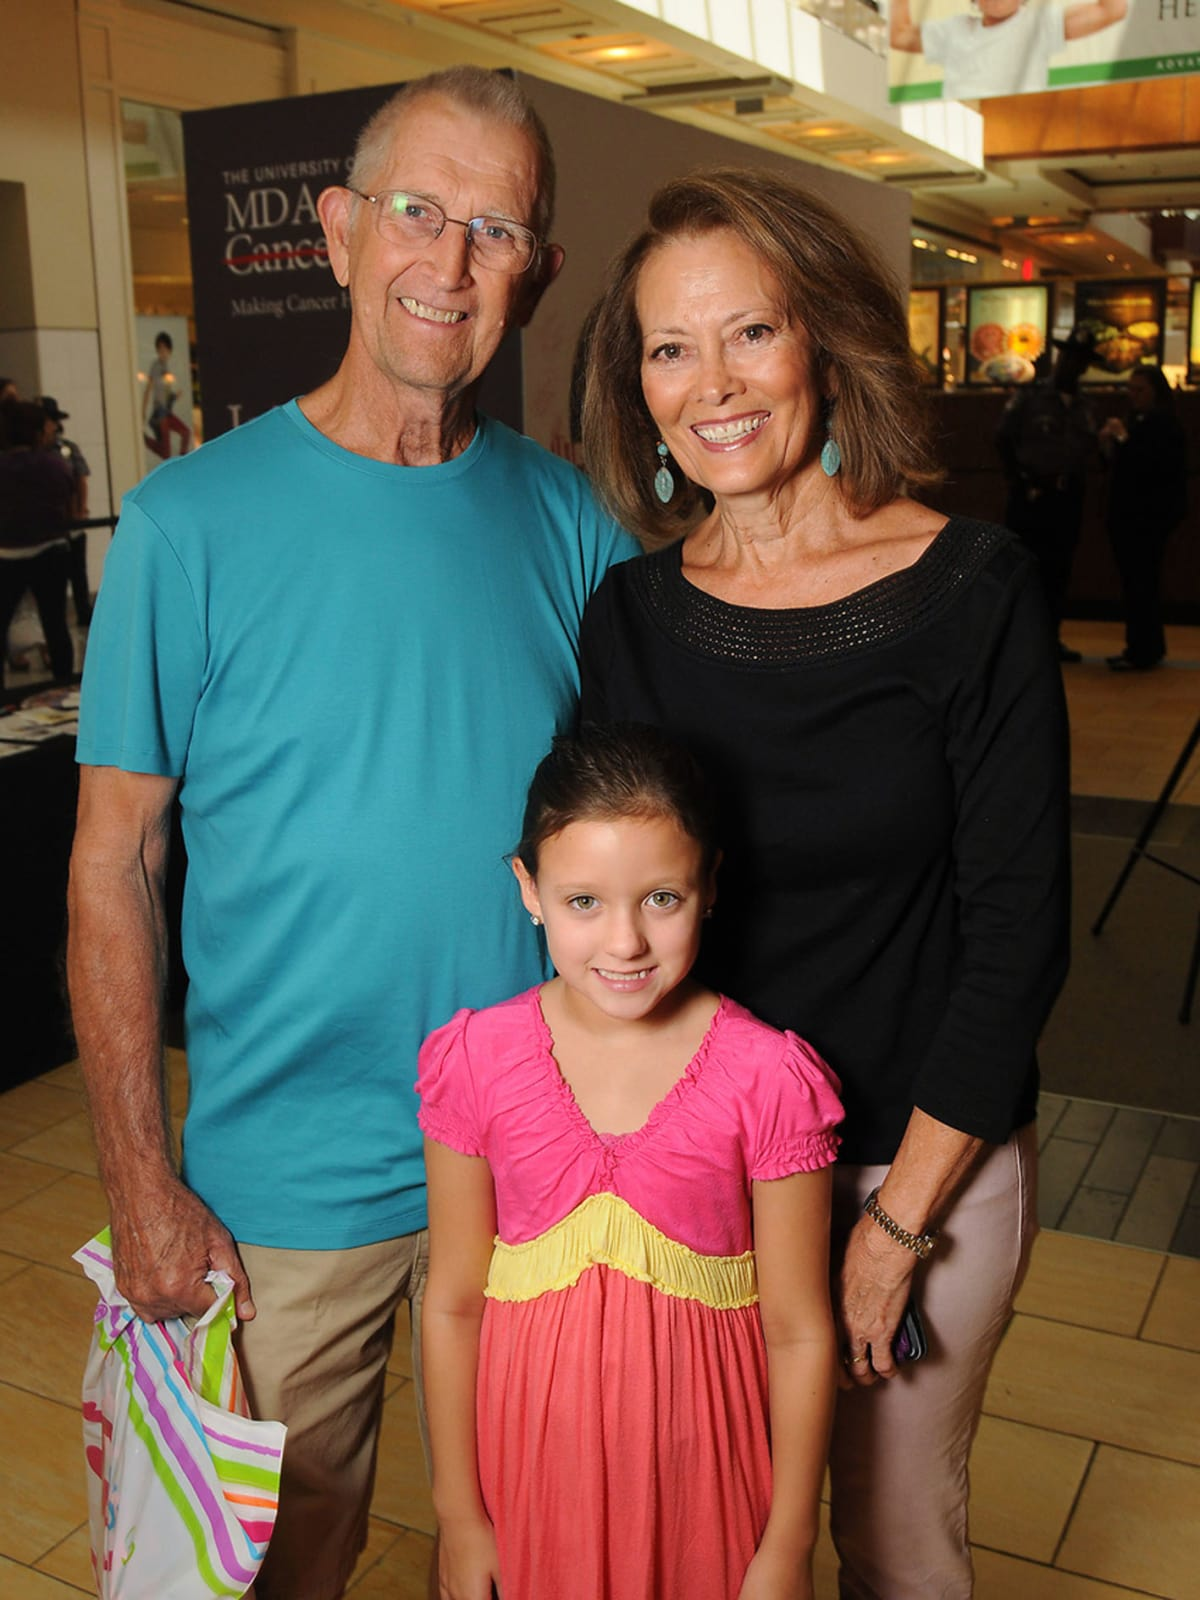 News, Shelby, MD Anderson Back to School, August 2015, Bob and Margaret Gray, Payton Rusk